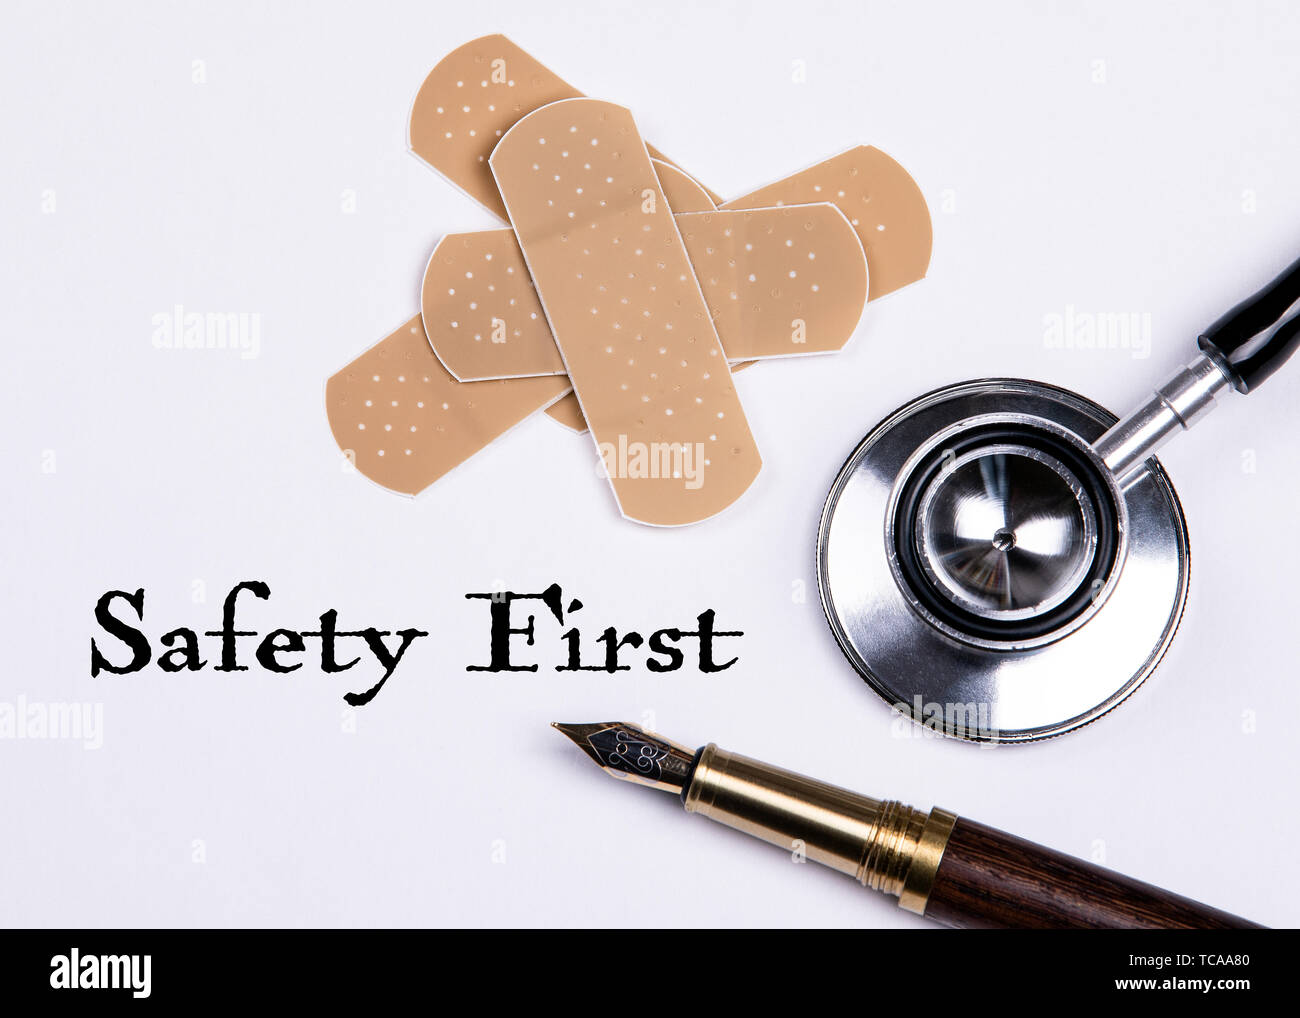 Safety First. Set of adhesive plasters and stethoscope on white background - Stock Image